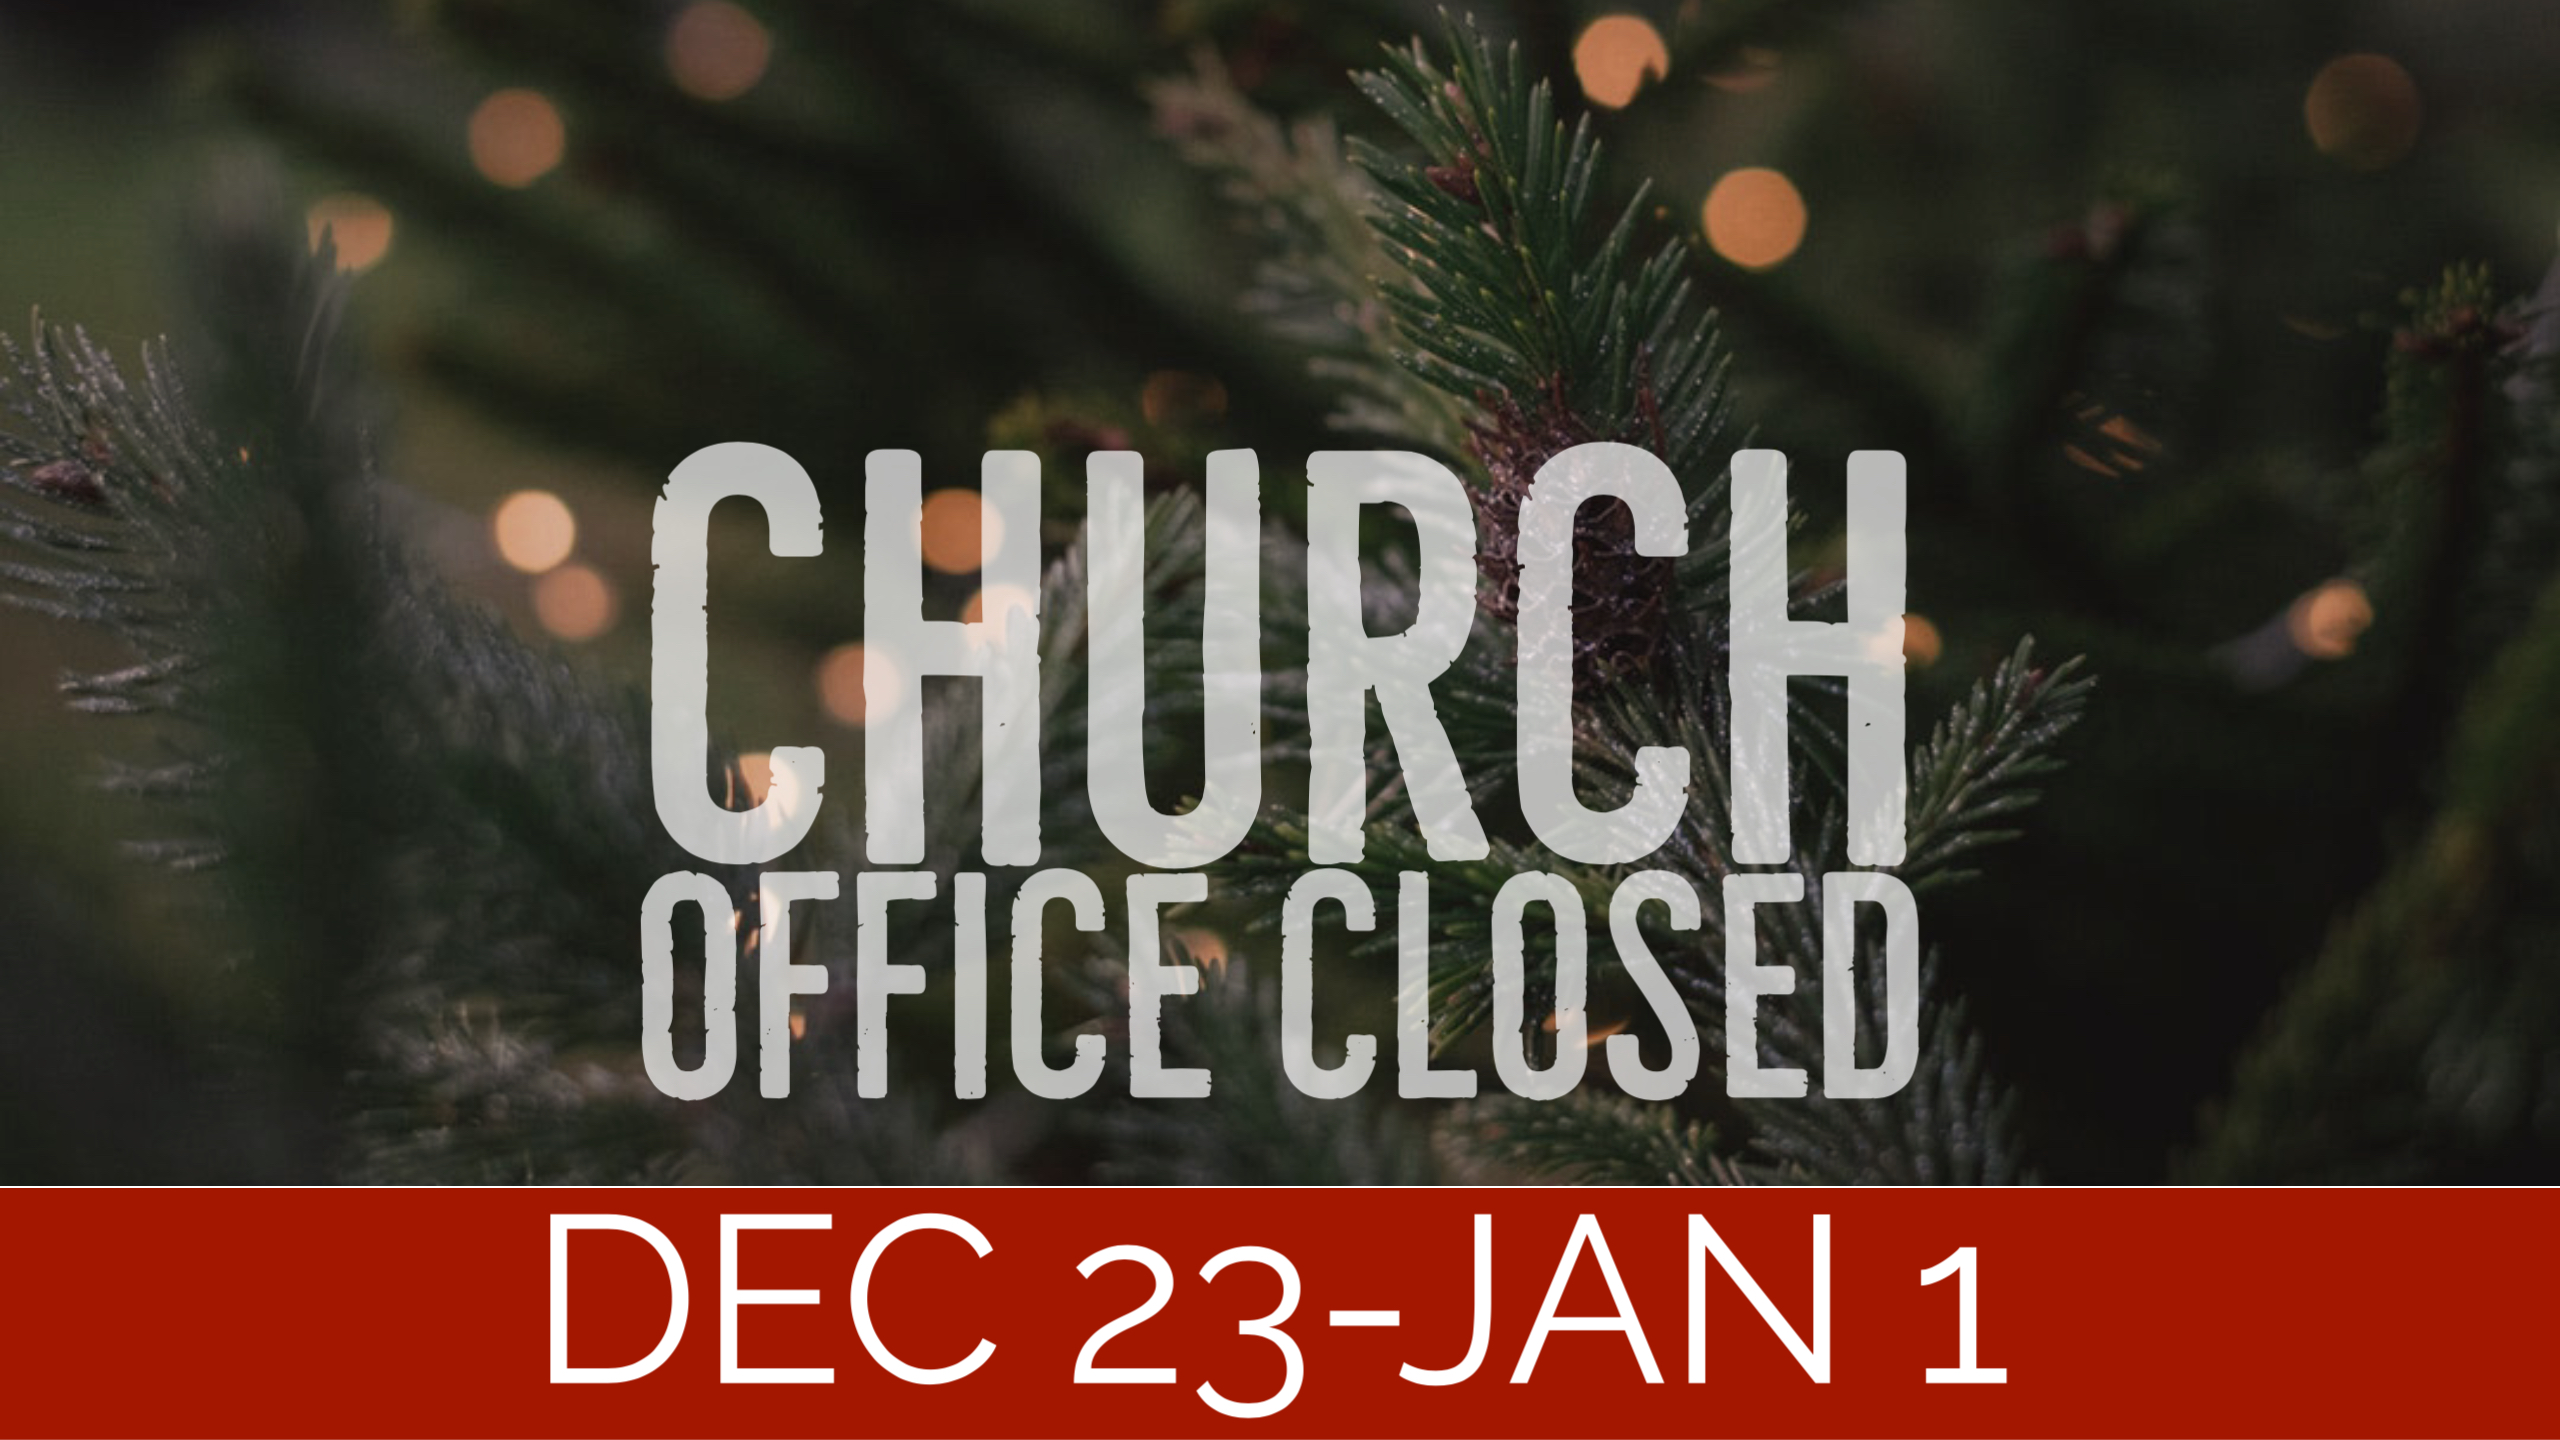 Closed Christmas image